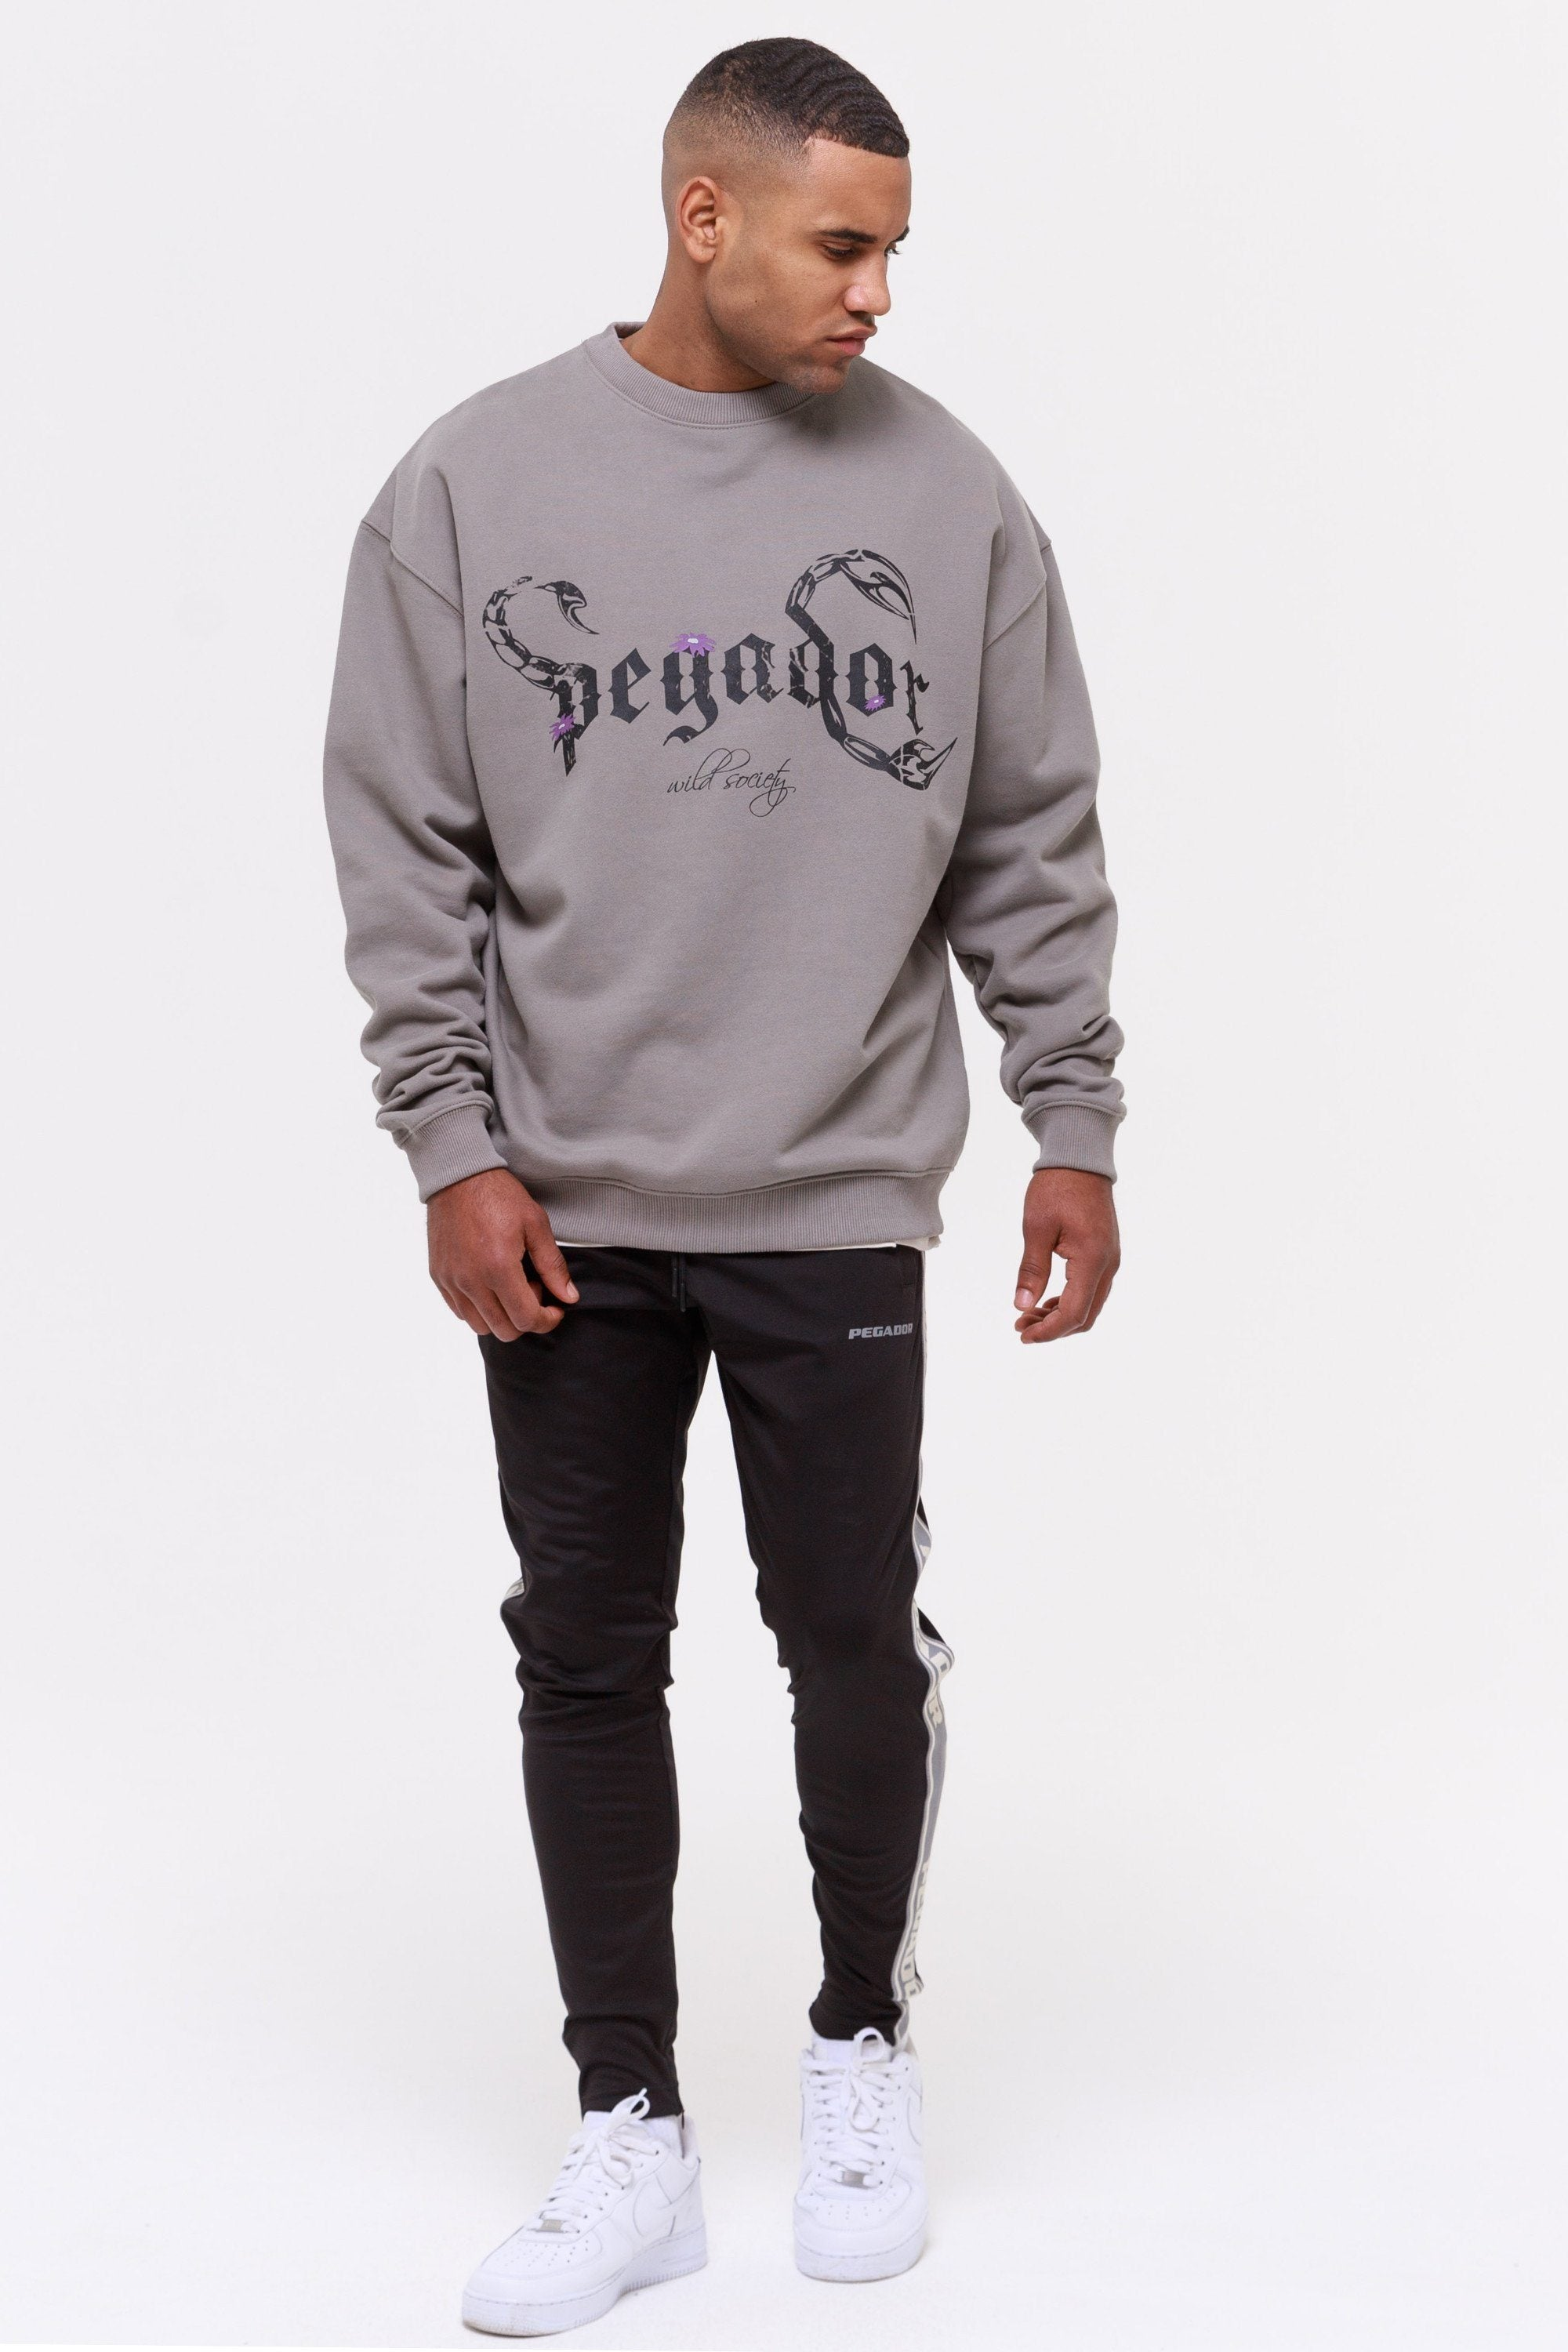 Deadwood Oversized Sweater Washed Frost Grey SWEATER Wild Society